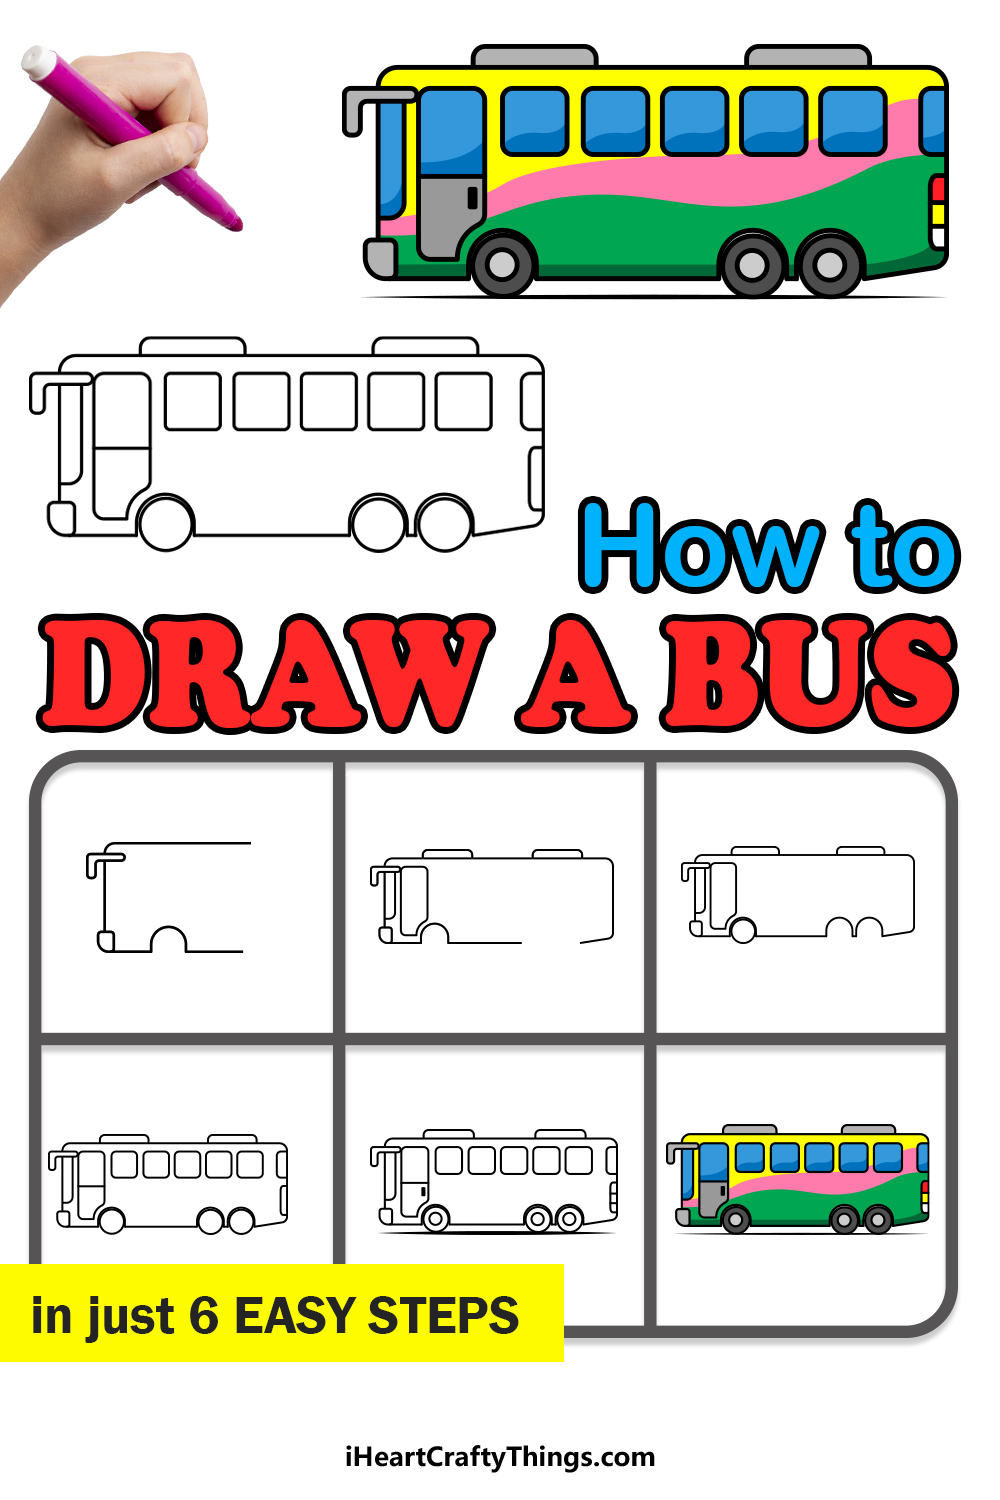 how to draw a bus in 6 easy steps